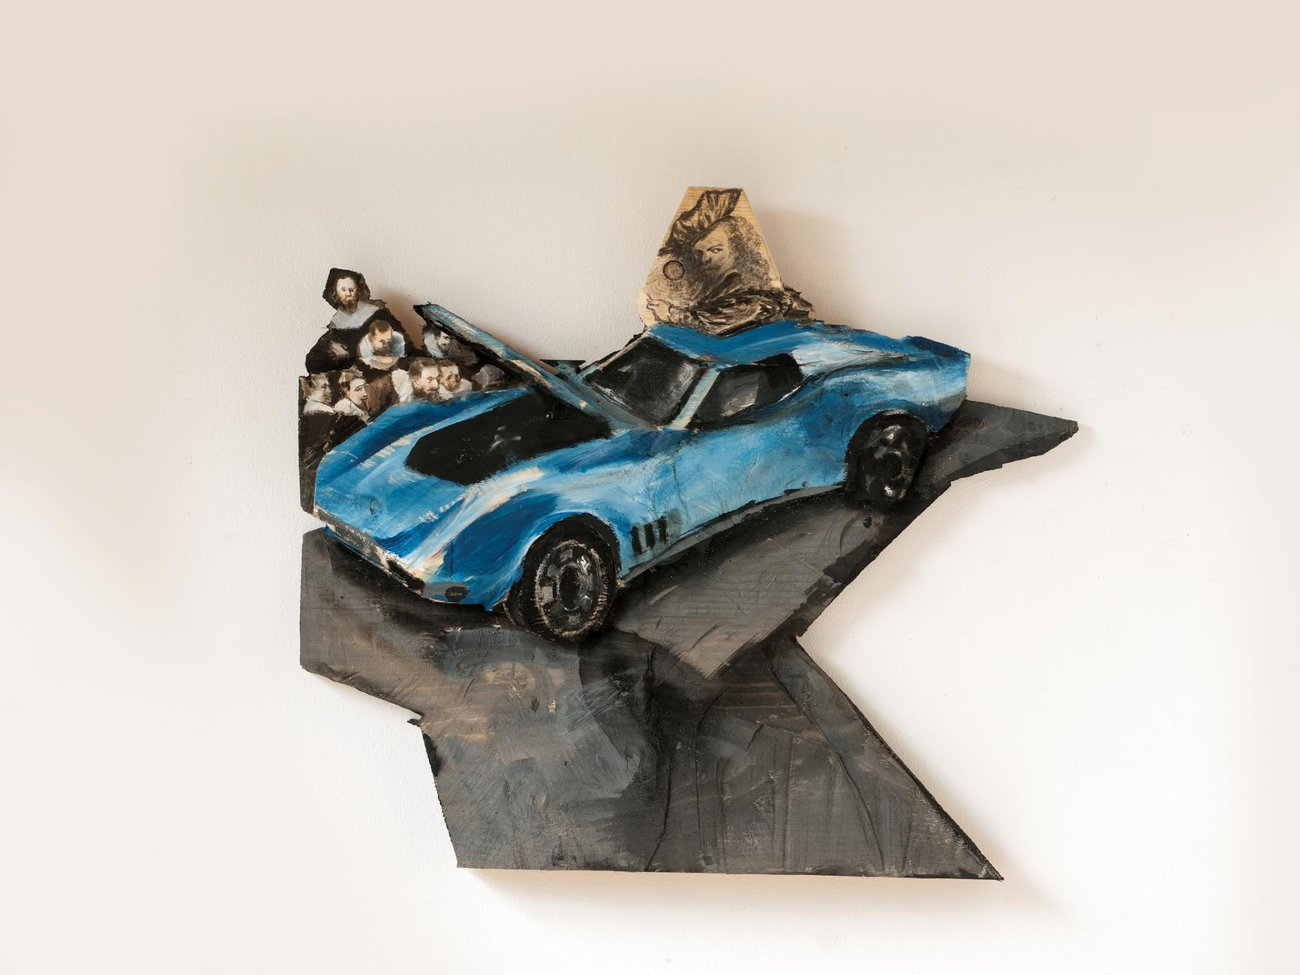 Preview image for Rembrandt and his little blu corvette